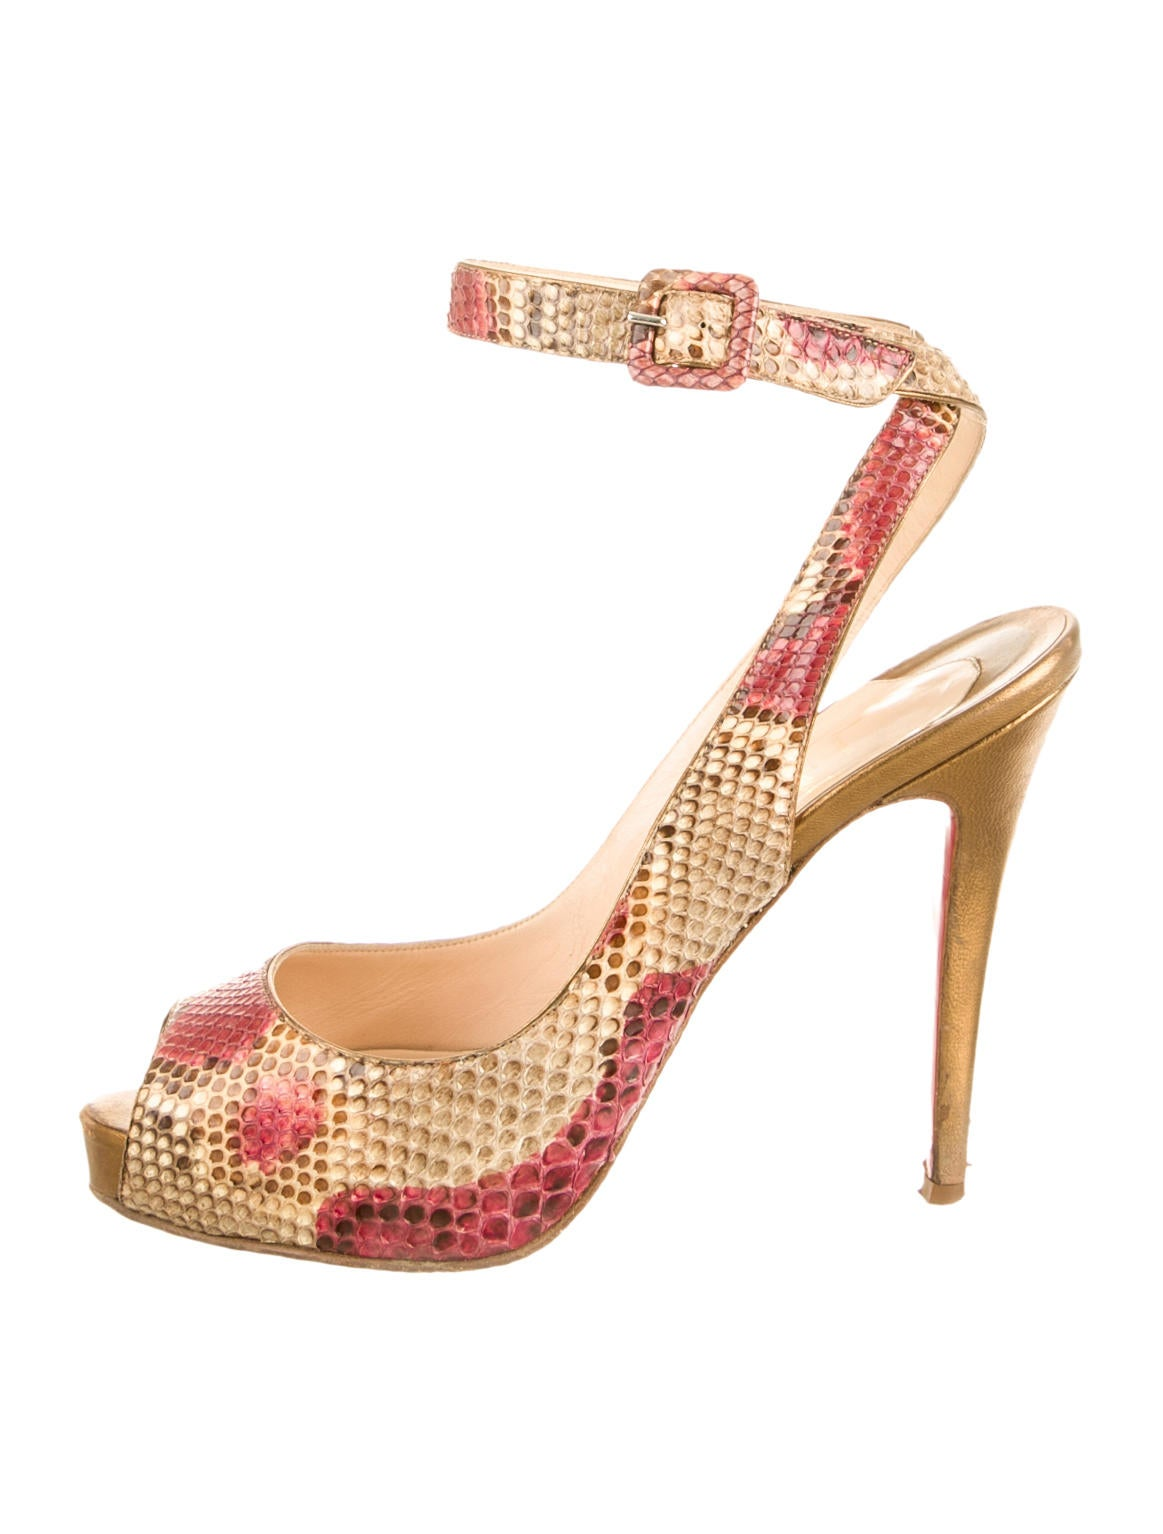 christian louboutin snakeskin peep-toe pumps Brown and metallic ...